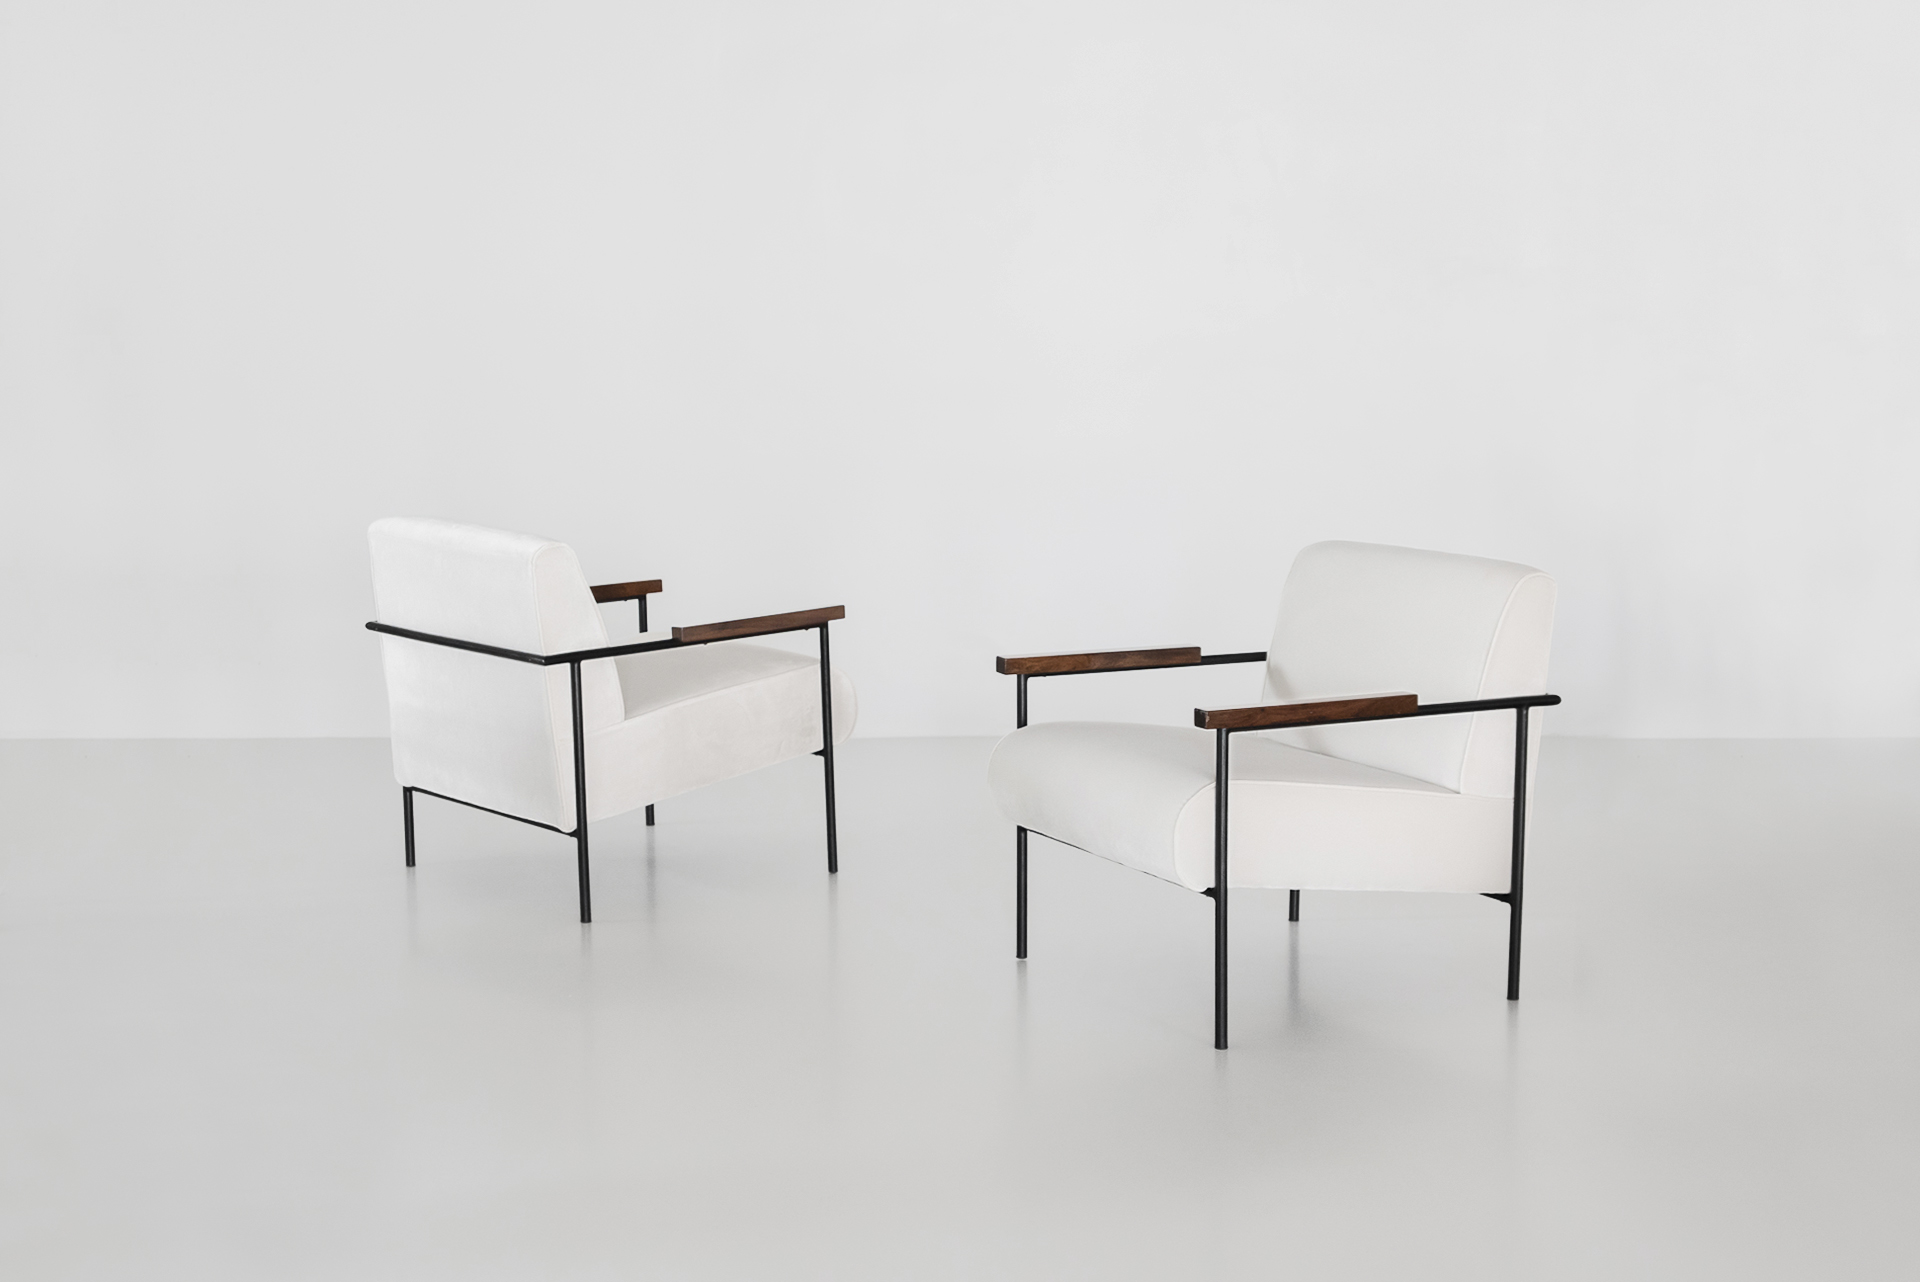 Geraldo de barros armchairs in white upholstrey with iron and wood manufactured by unilabor